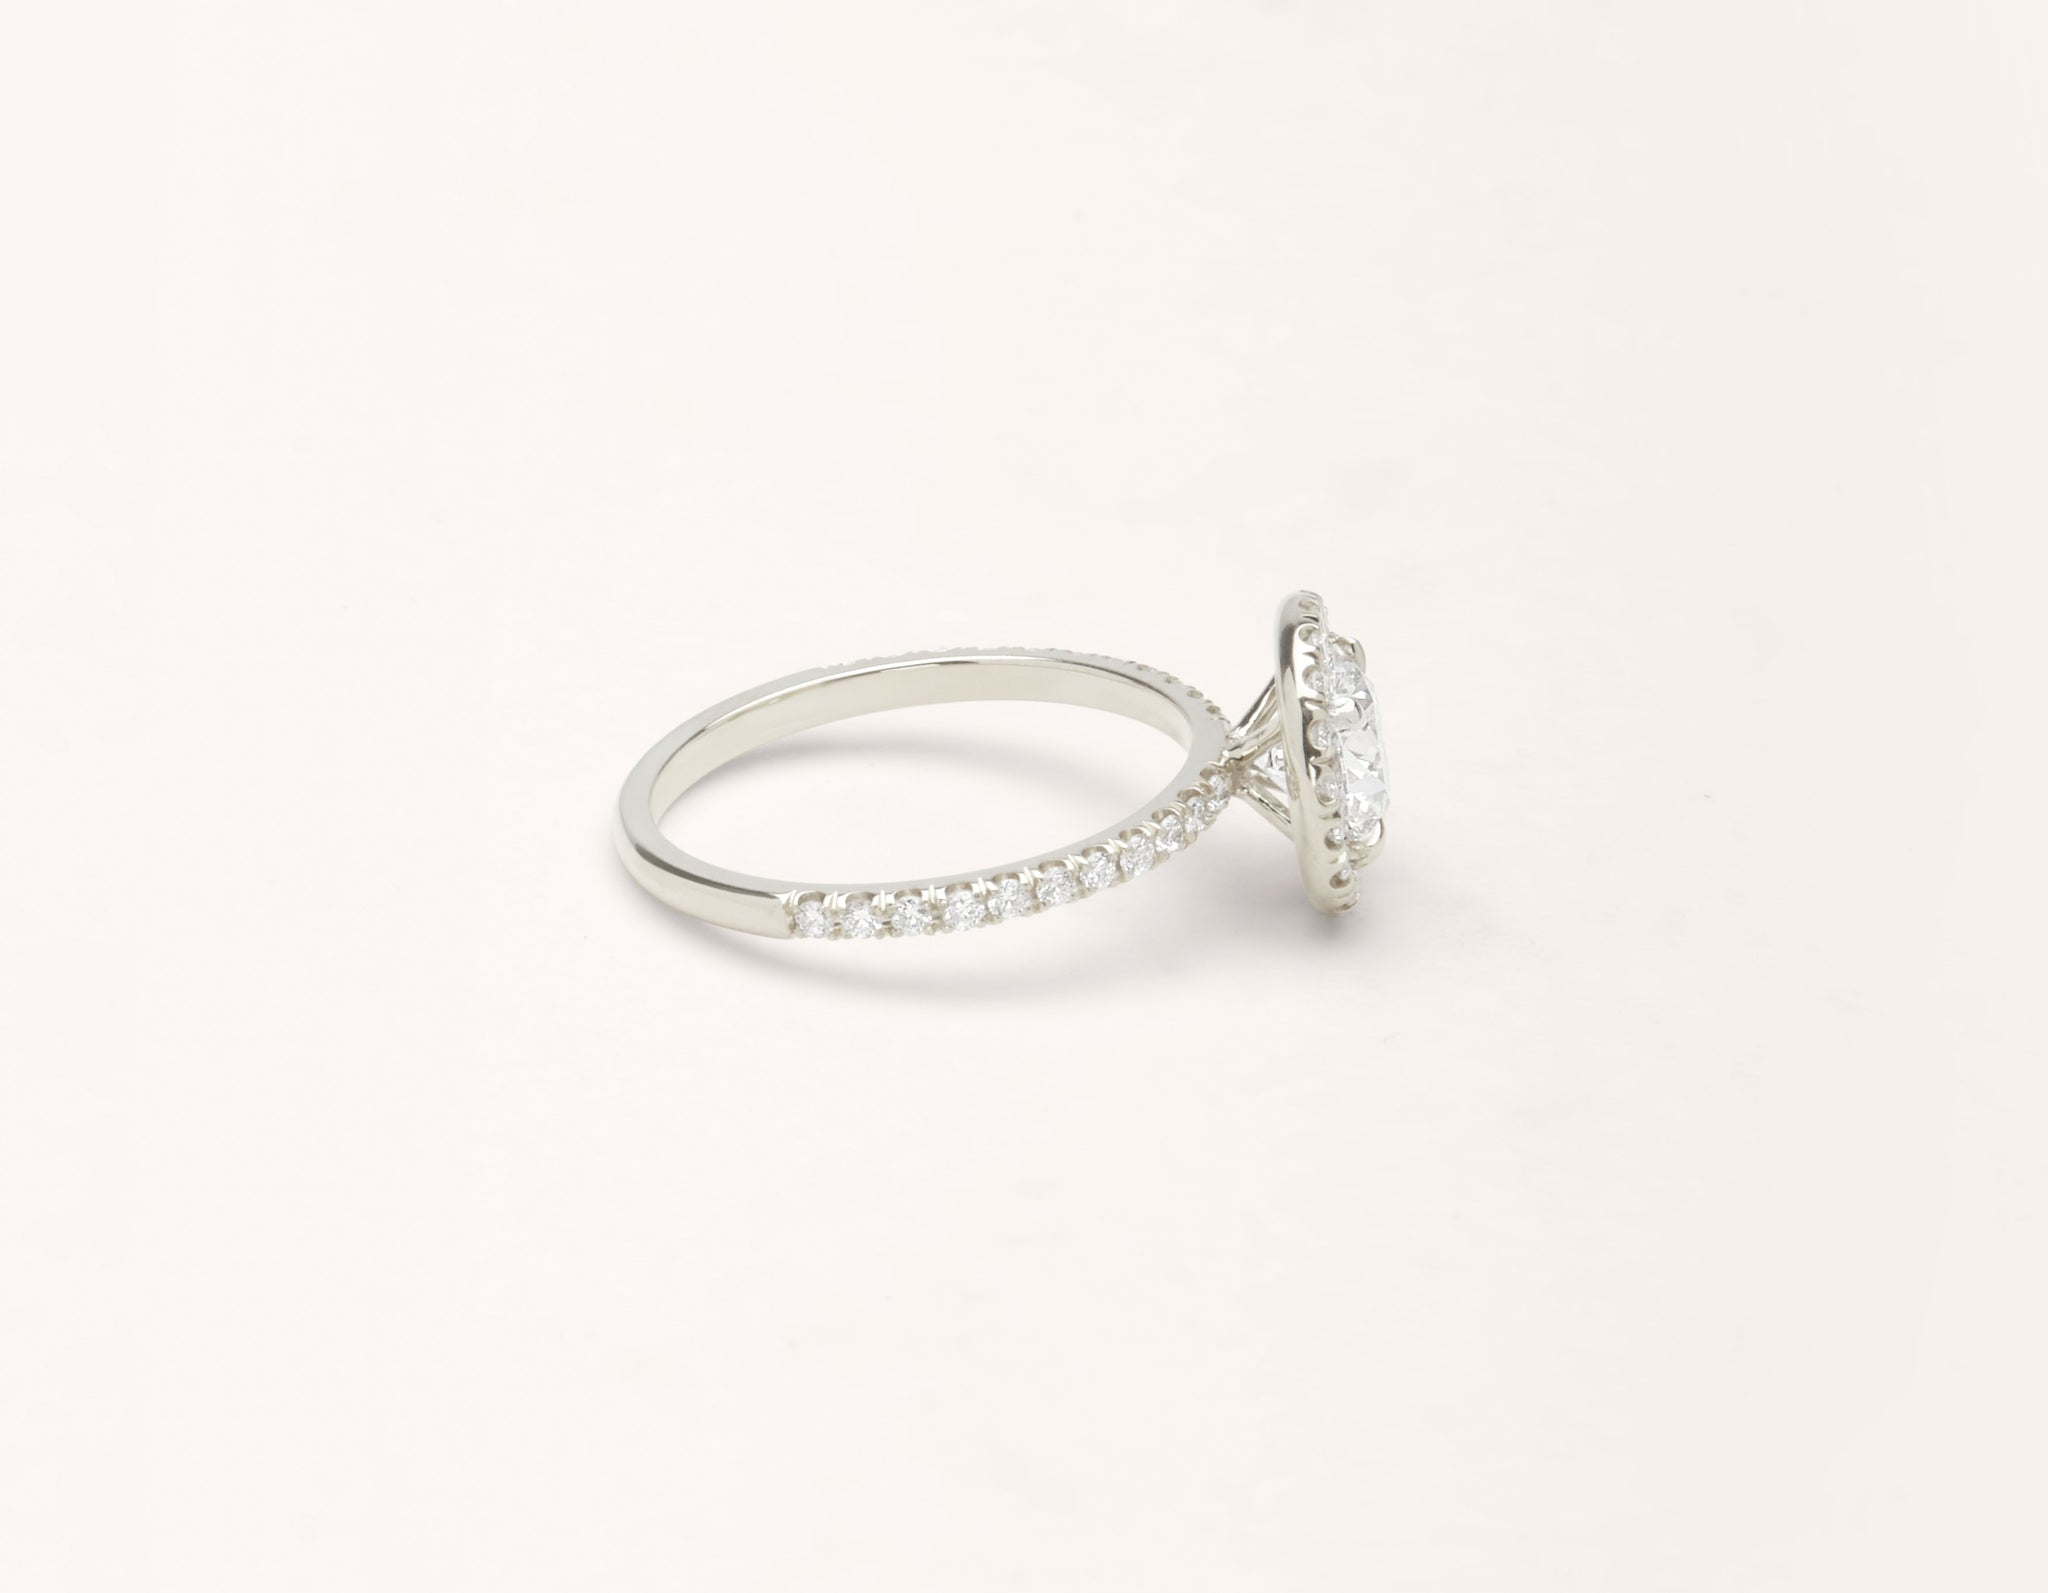 Simple modern 18k solid white gold 1 carat Halo diamond pave engagement ring Vrai & Oro